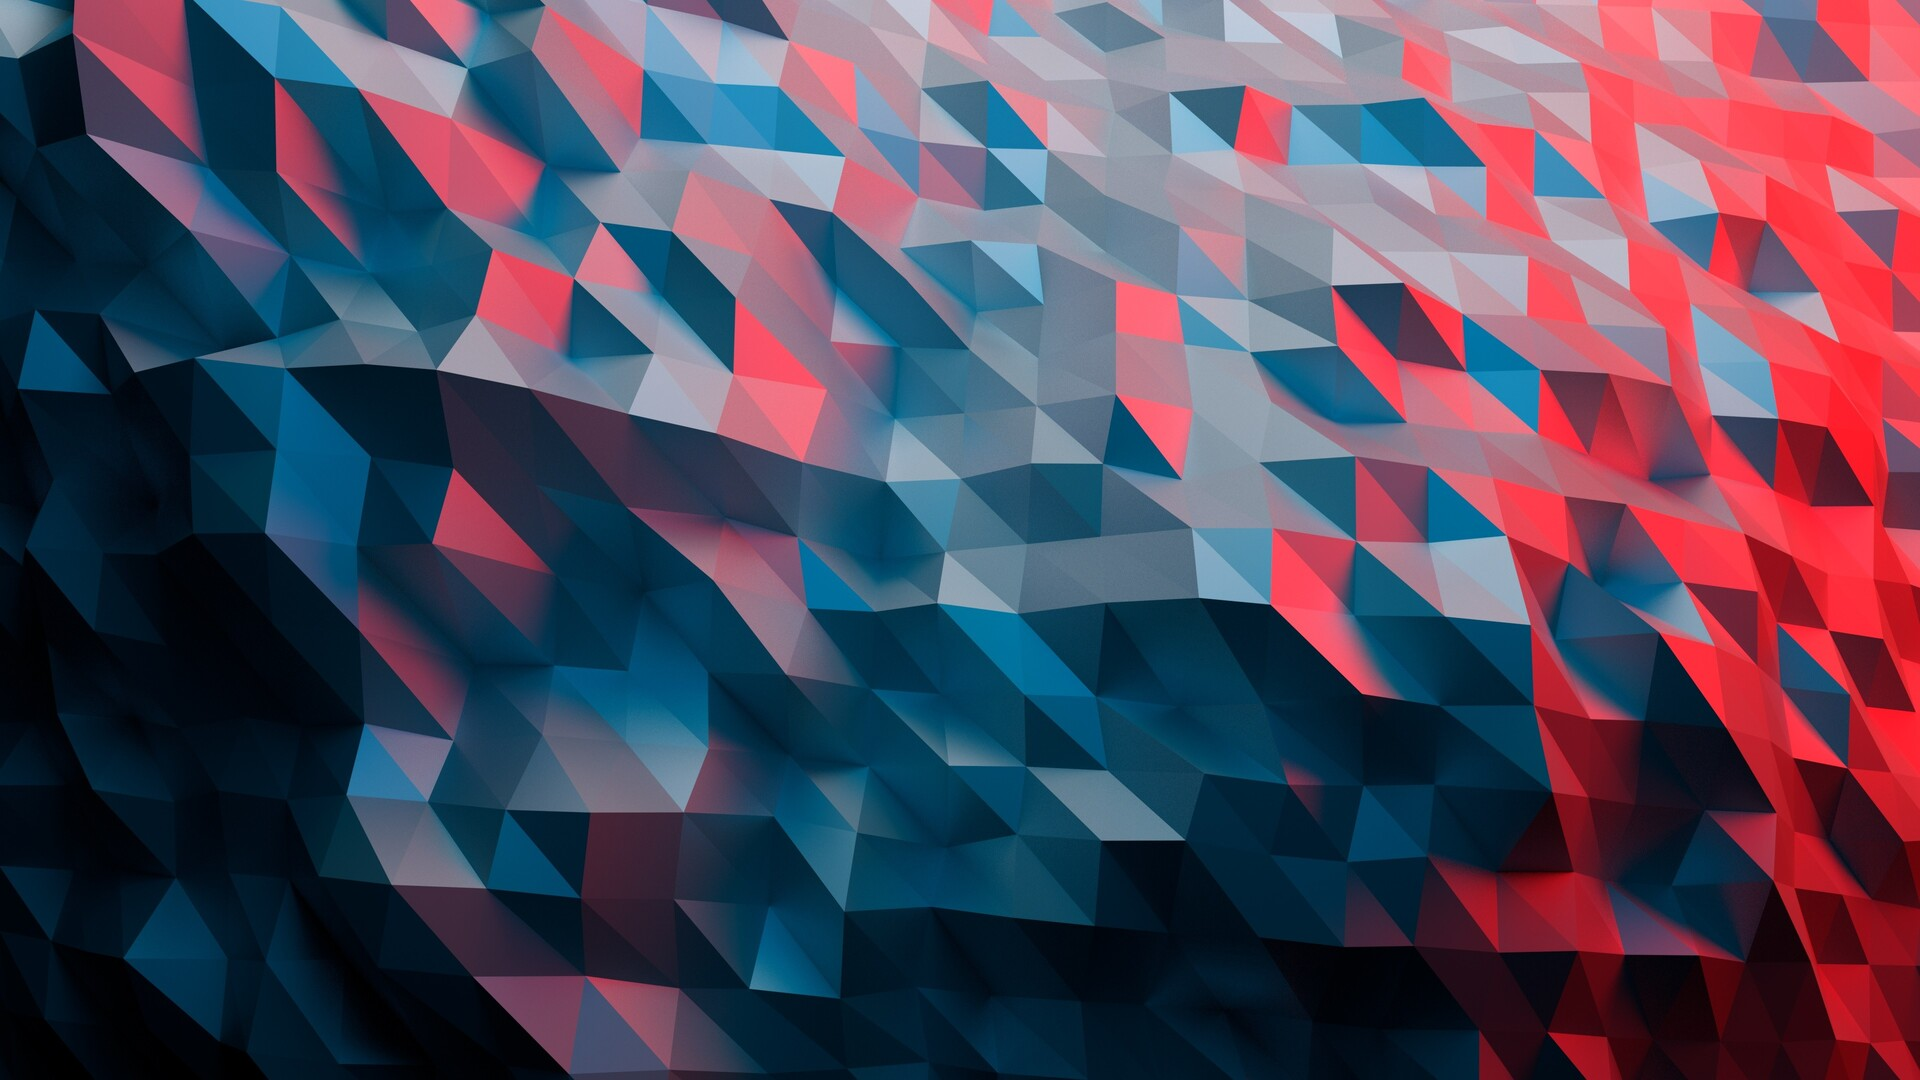 low-poly-abstract-artwork-4k-ns.jpg